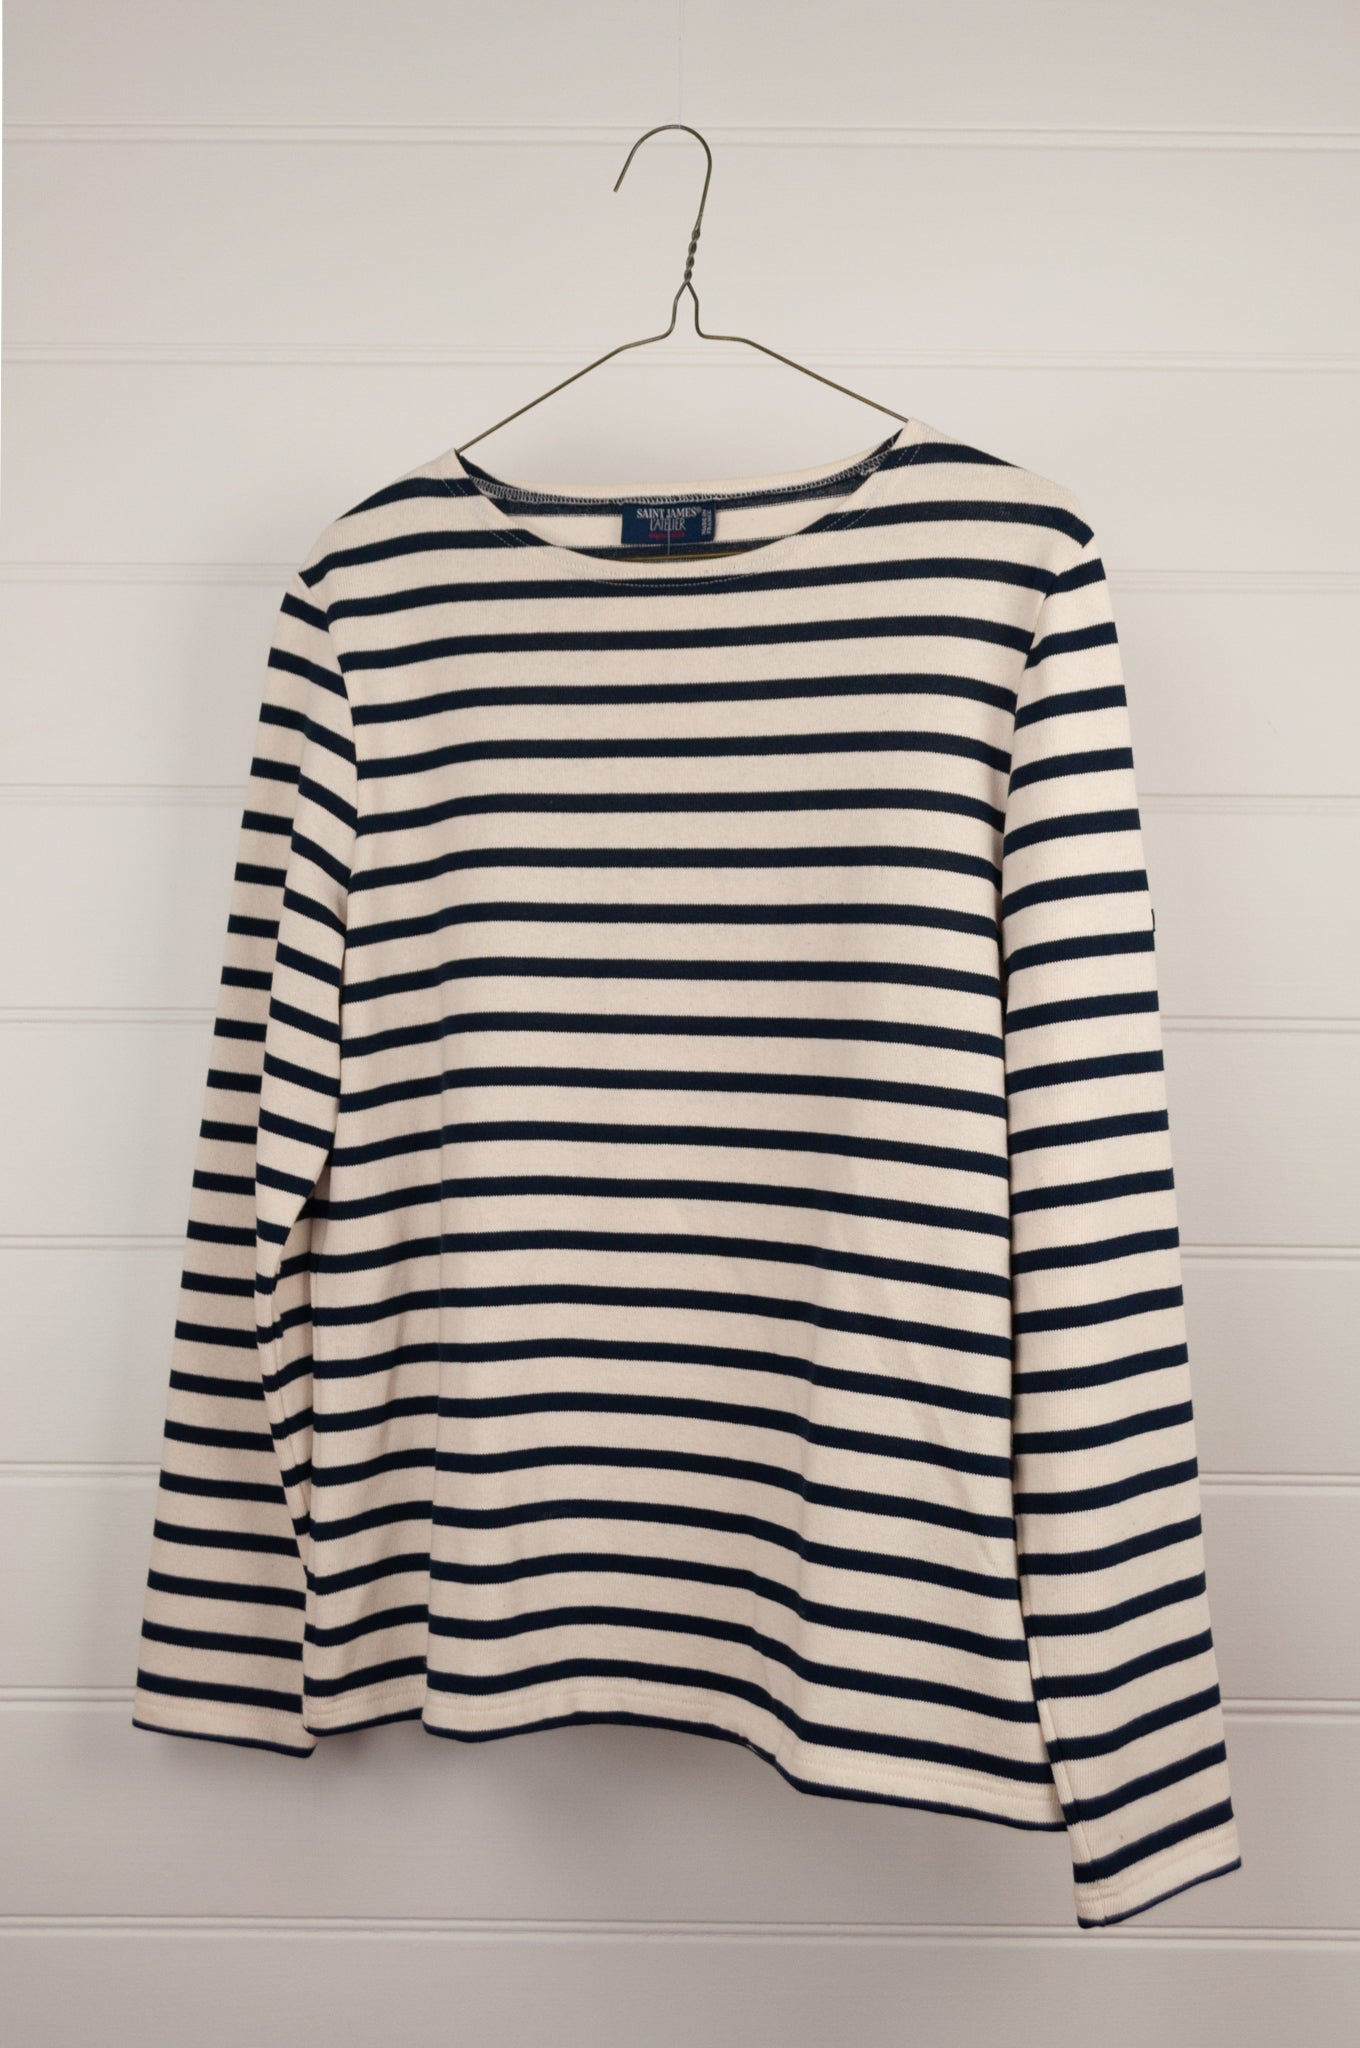 Saint James classic Meridame blue and ecru striped fisherman's long sleeved t-shirt, made in France.